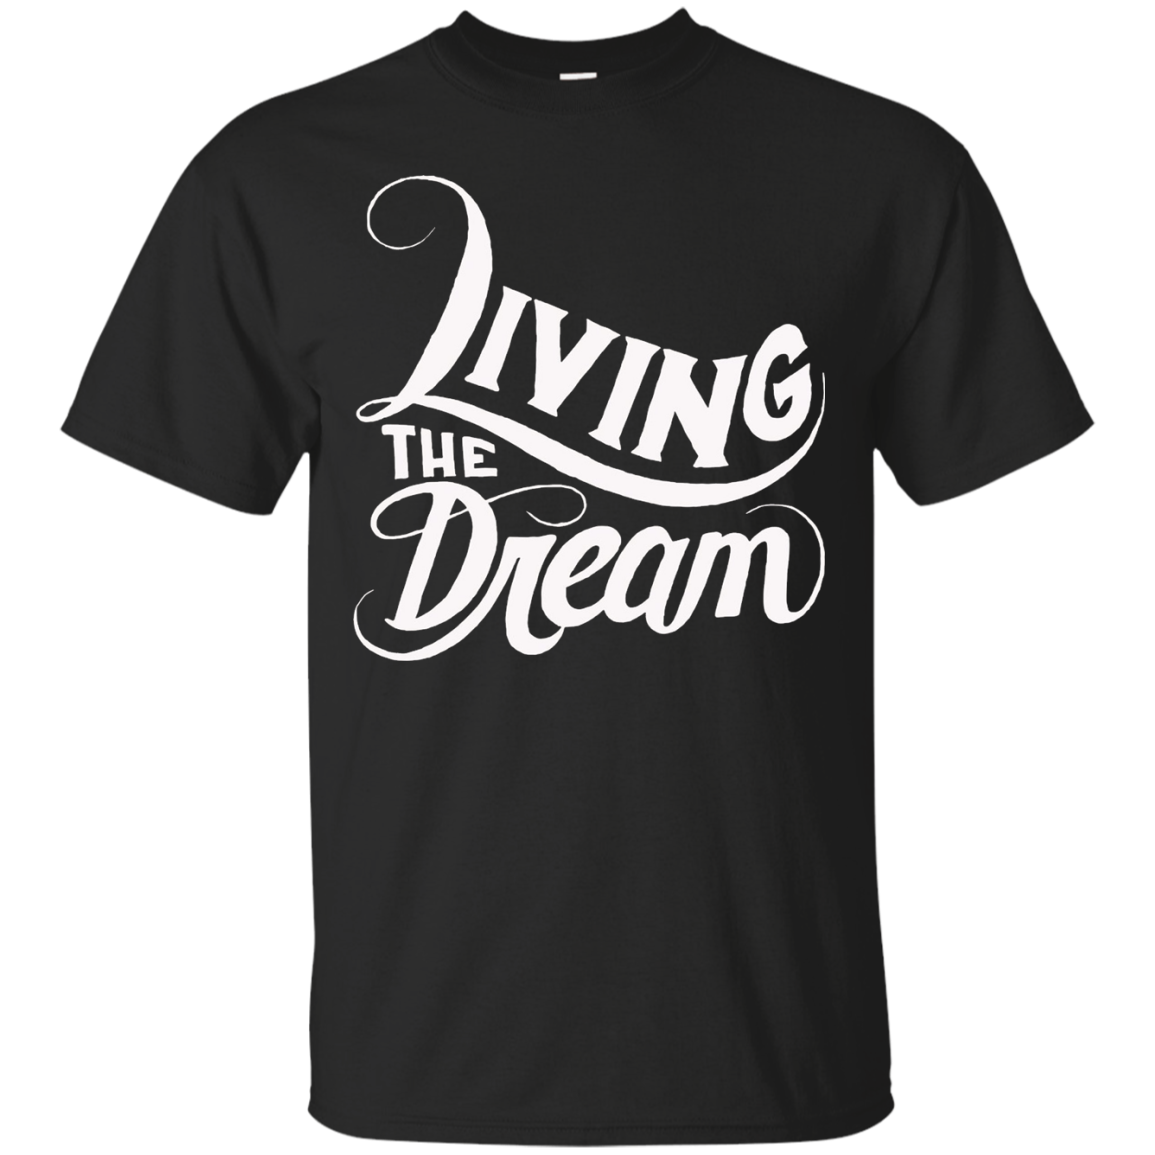 Living The Dream - Inspirational Motivational T Shirt